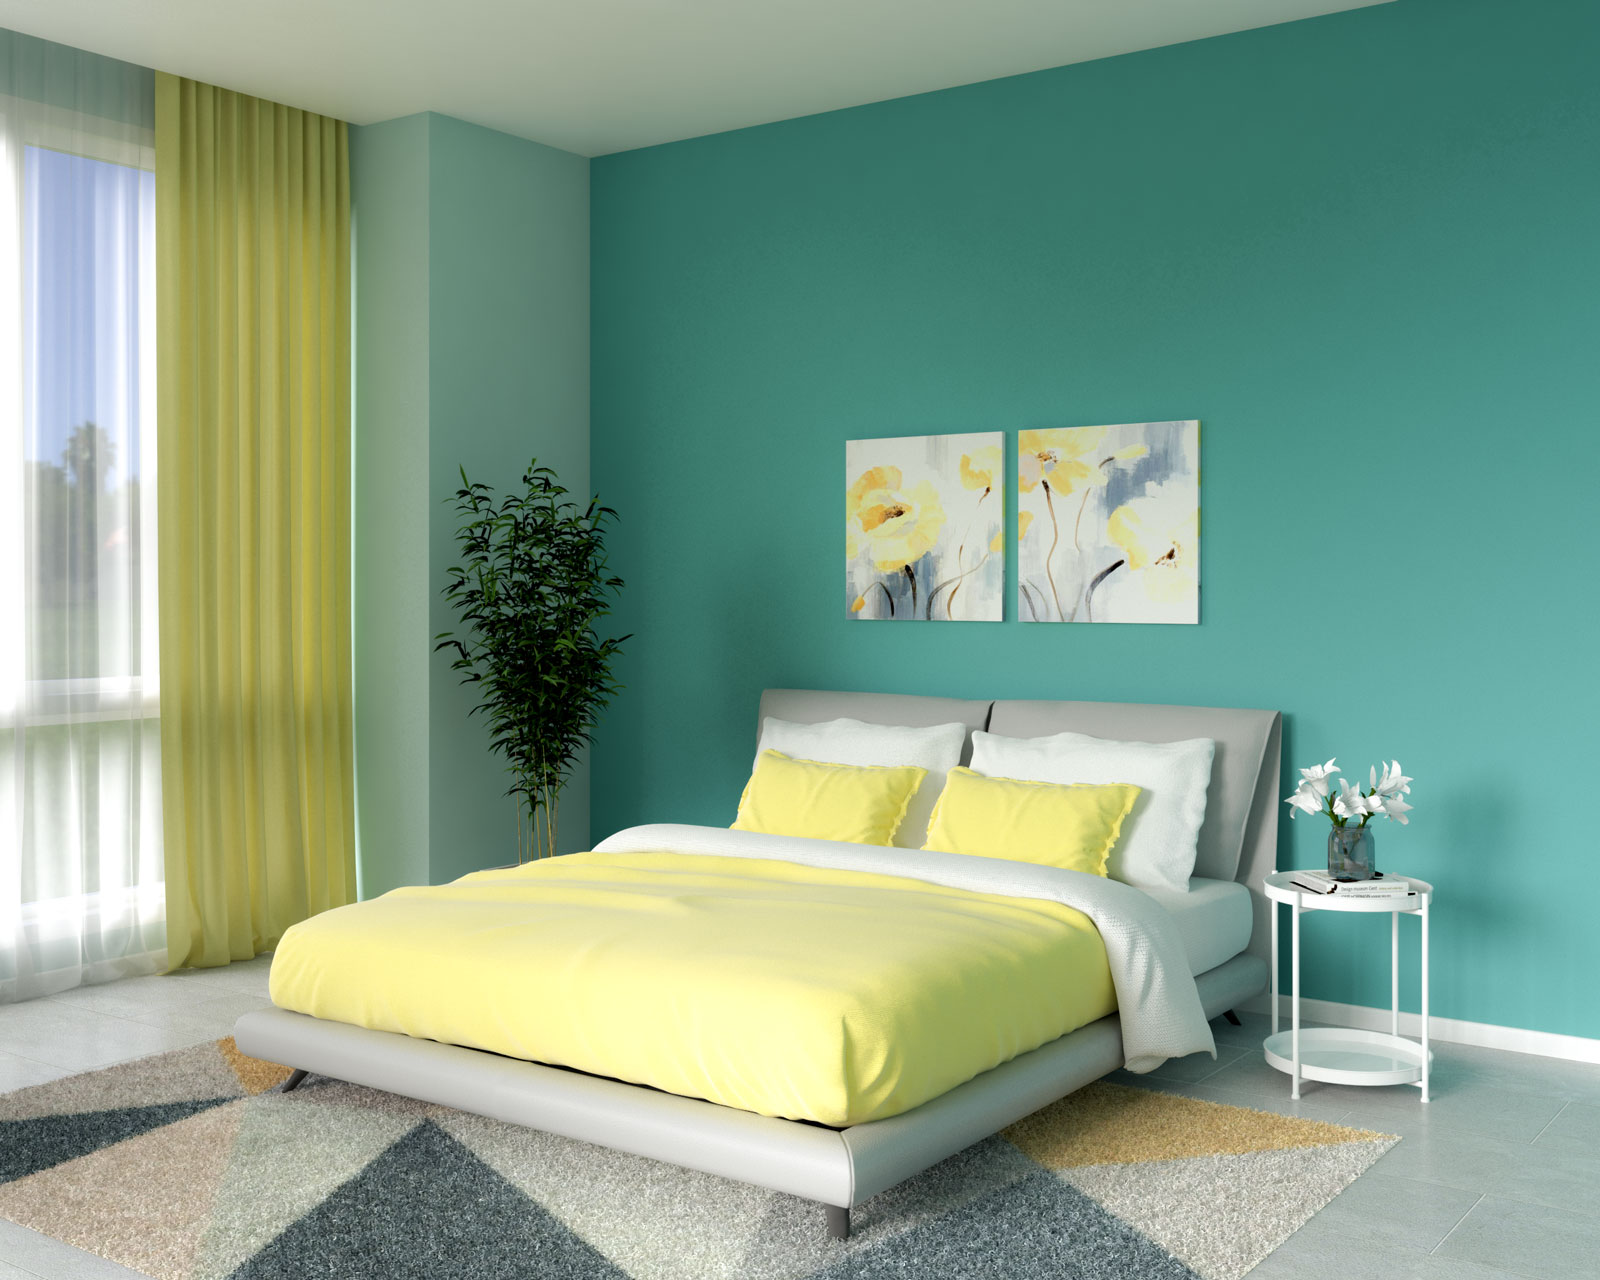 Bedroom with teal wall and yellow accessories